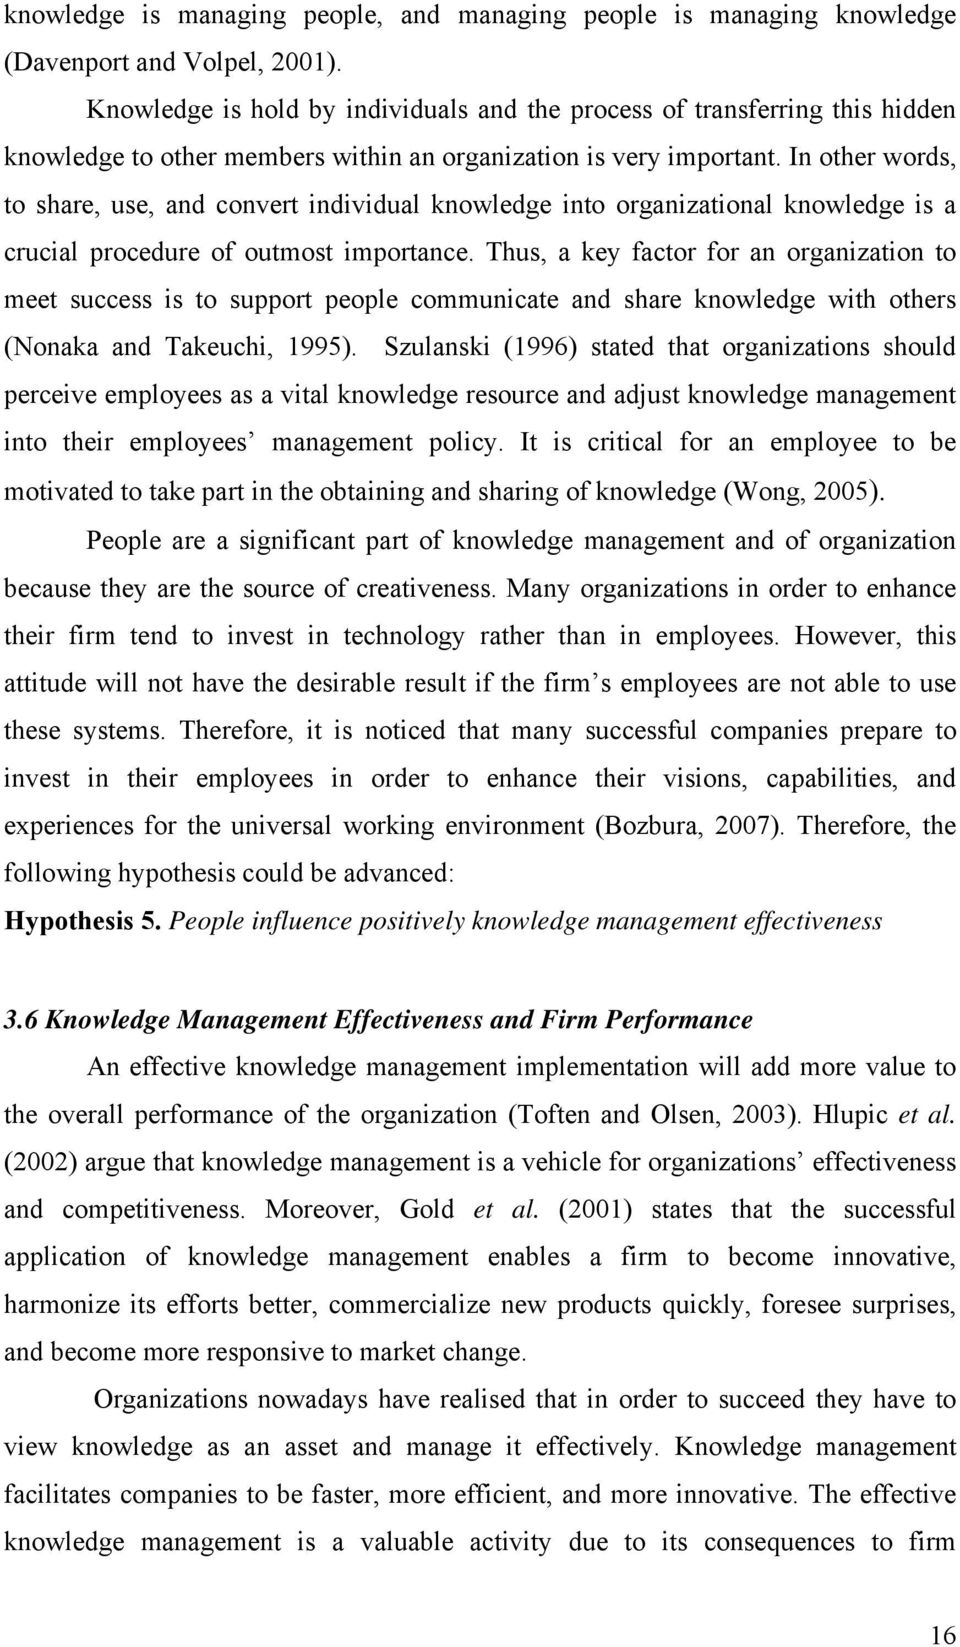 In other words, to share, use, and convert individual knowledge into organizational knowledge is a crucial procedure of outmost importance.